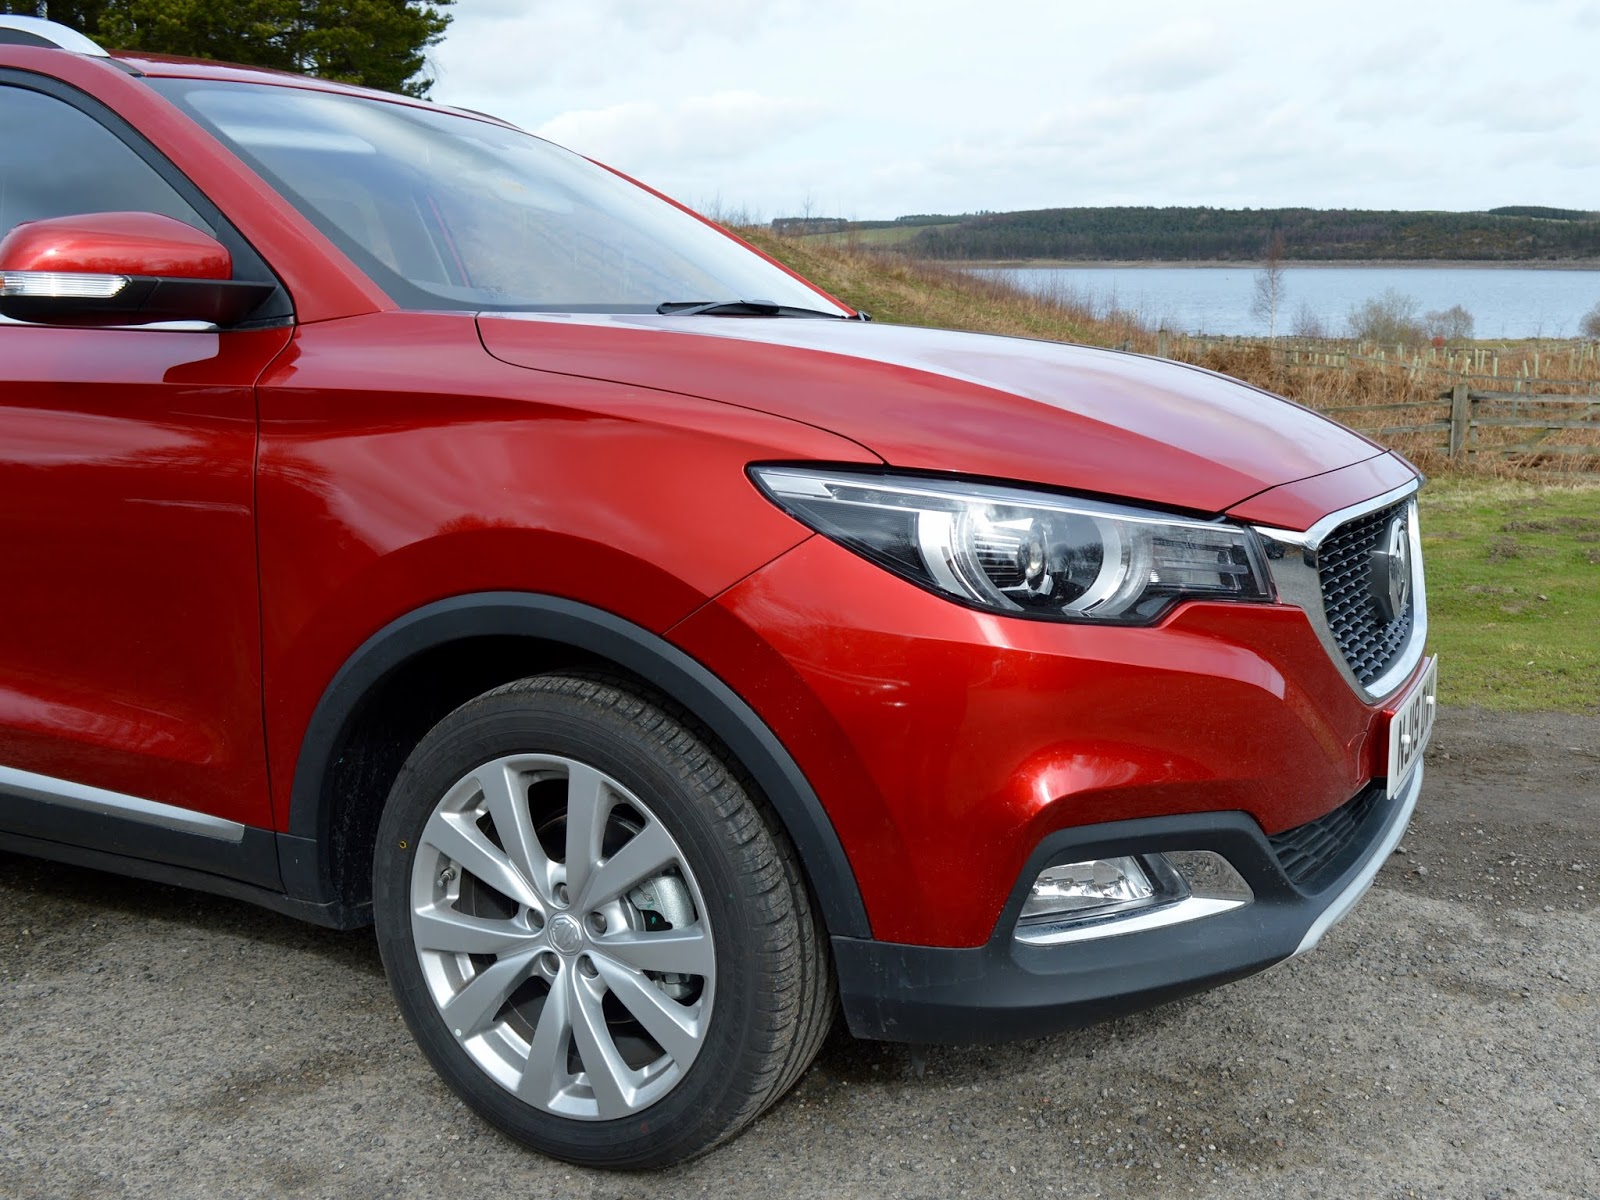 MG ZS 1.5 Excite Review | A New Compact SUV for less than £13,000 - front of car